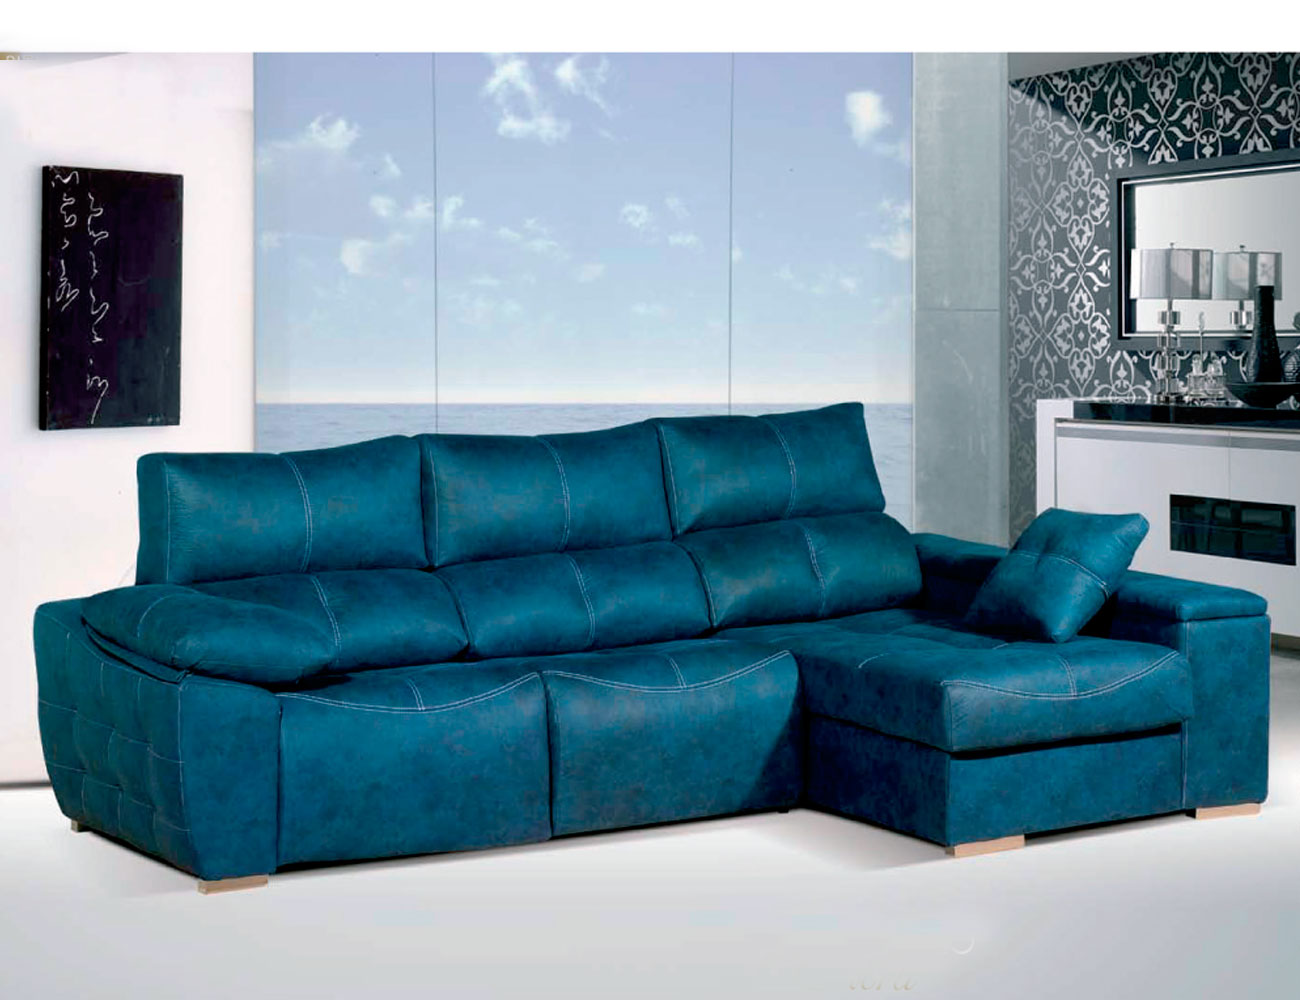 Sofa chaiselongue relax 2 motores anti manchas turquesa53